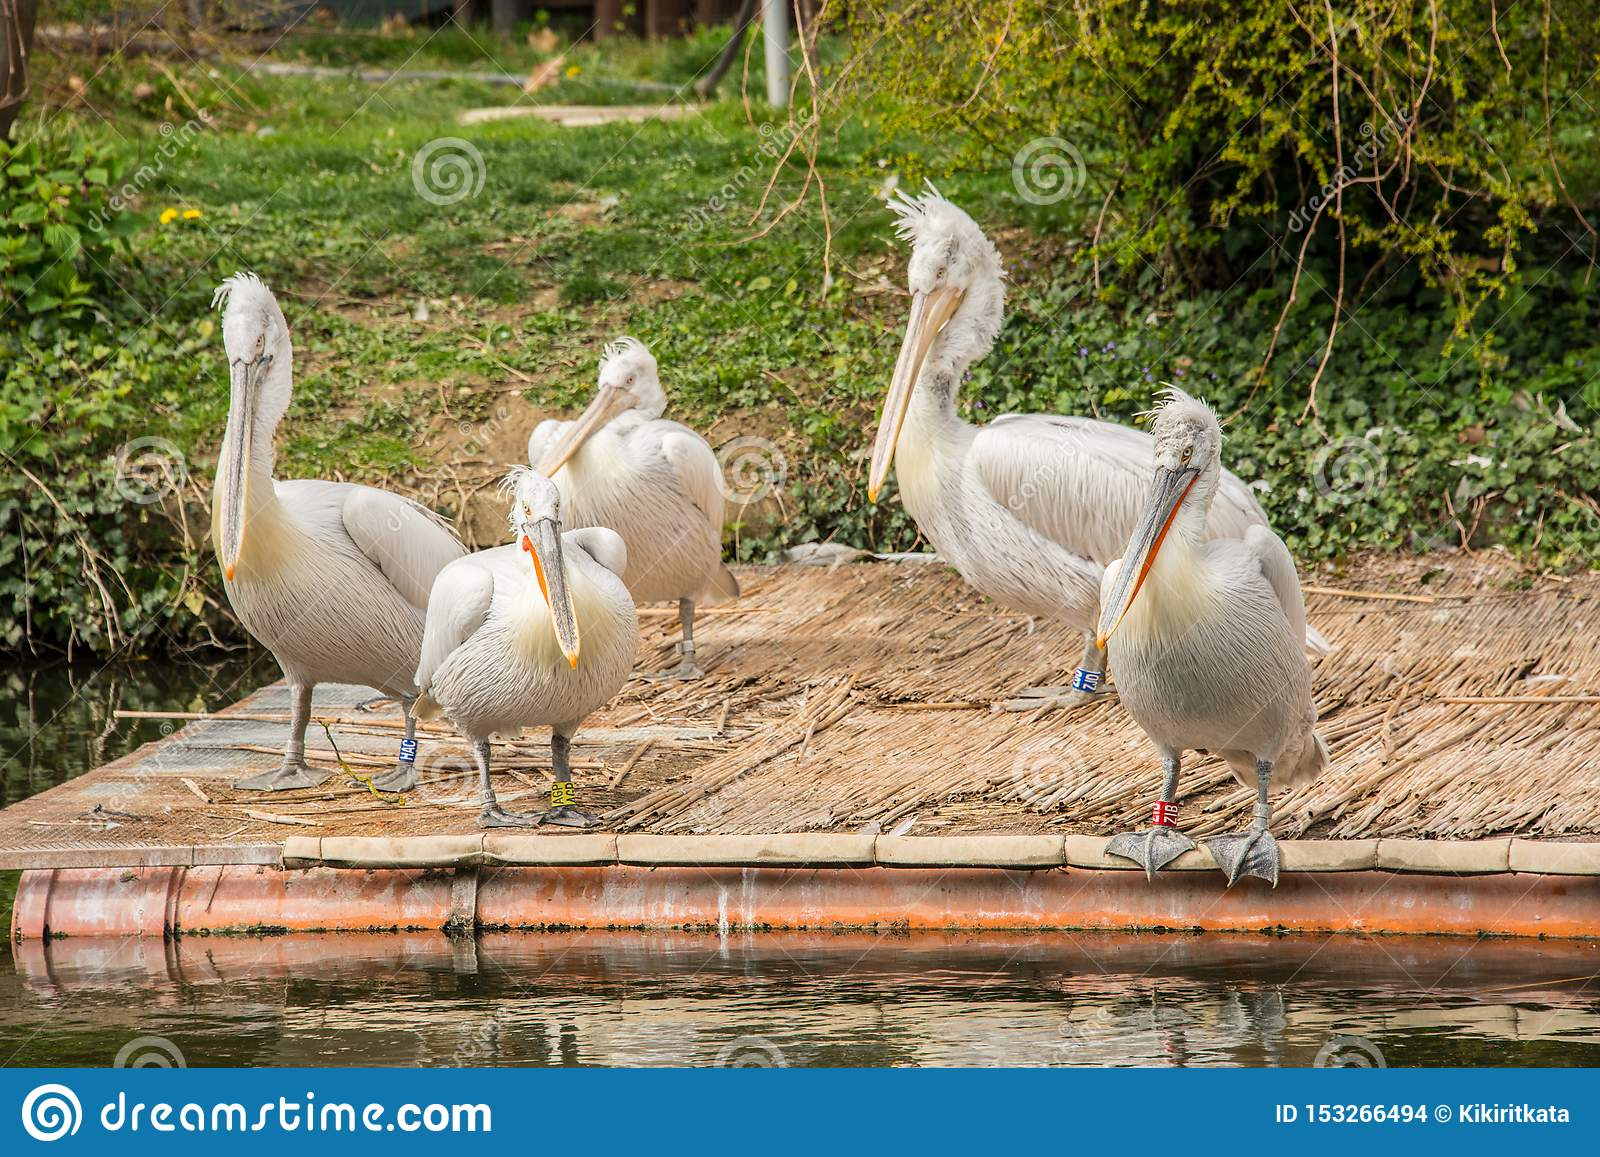 Pelecanus onocrotalus / Great white pelican in a group on a platform on a lake